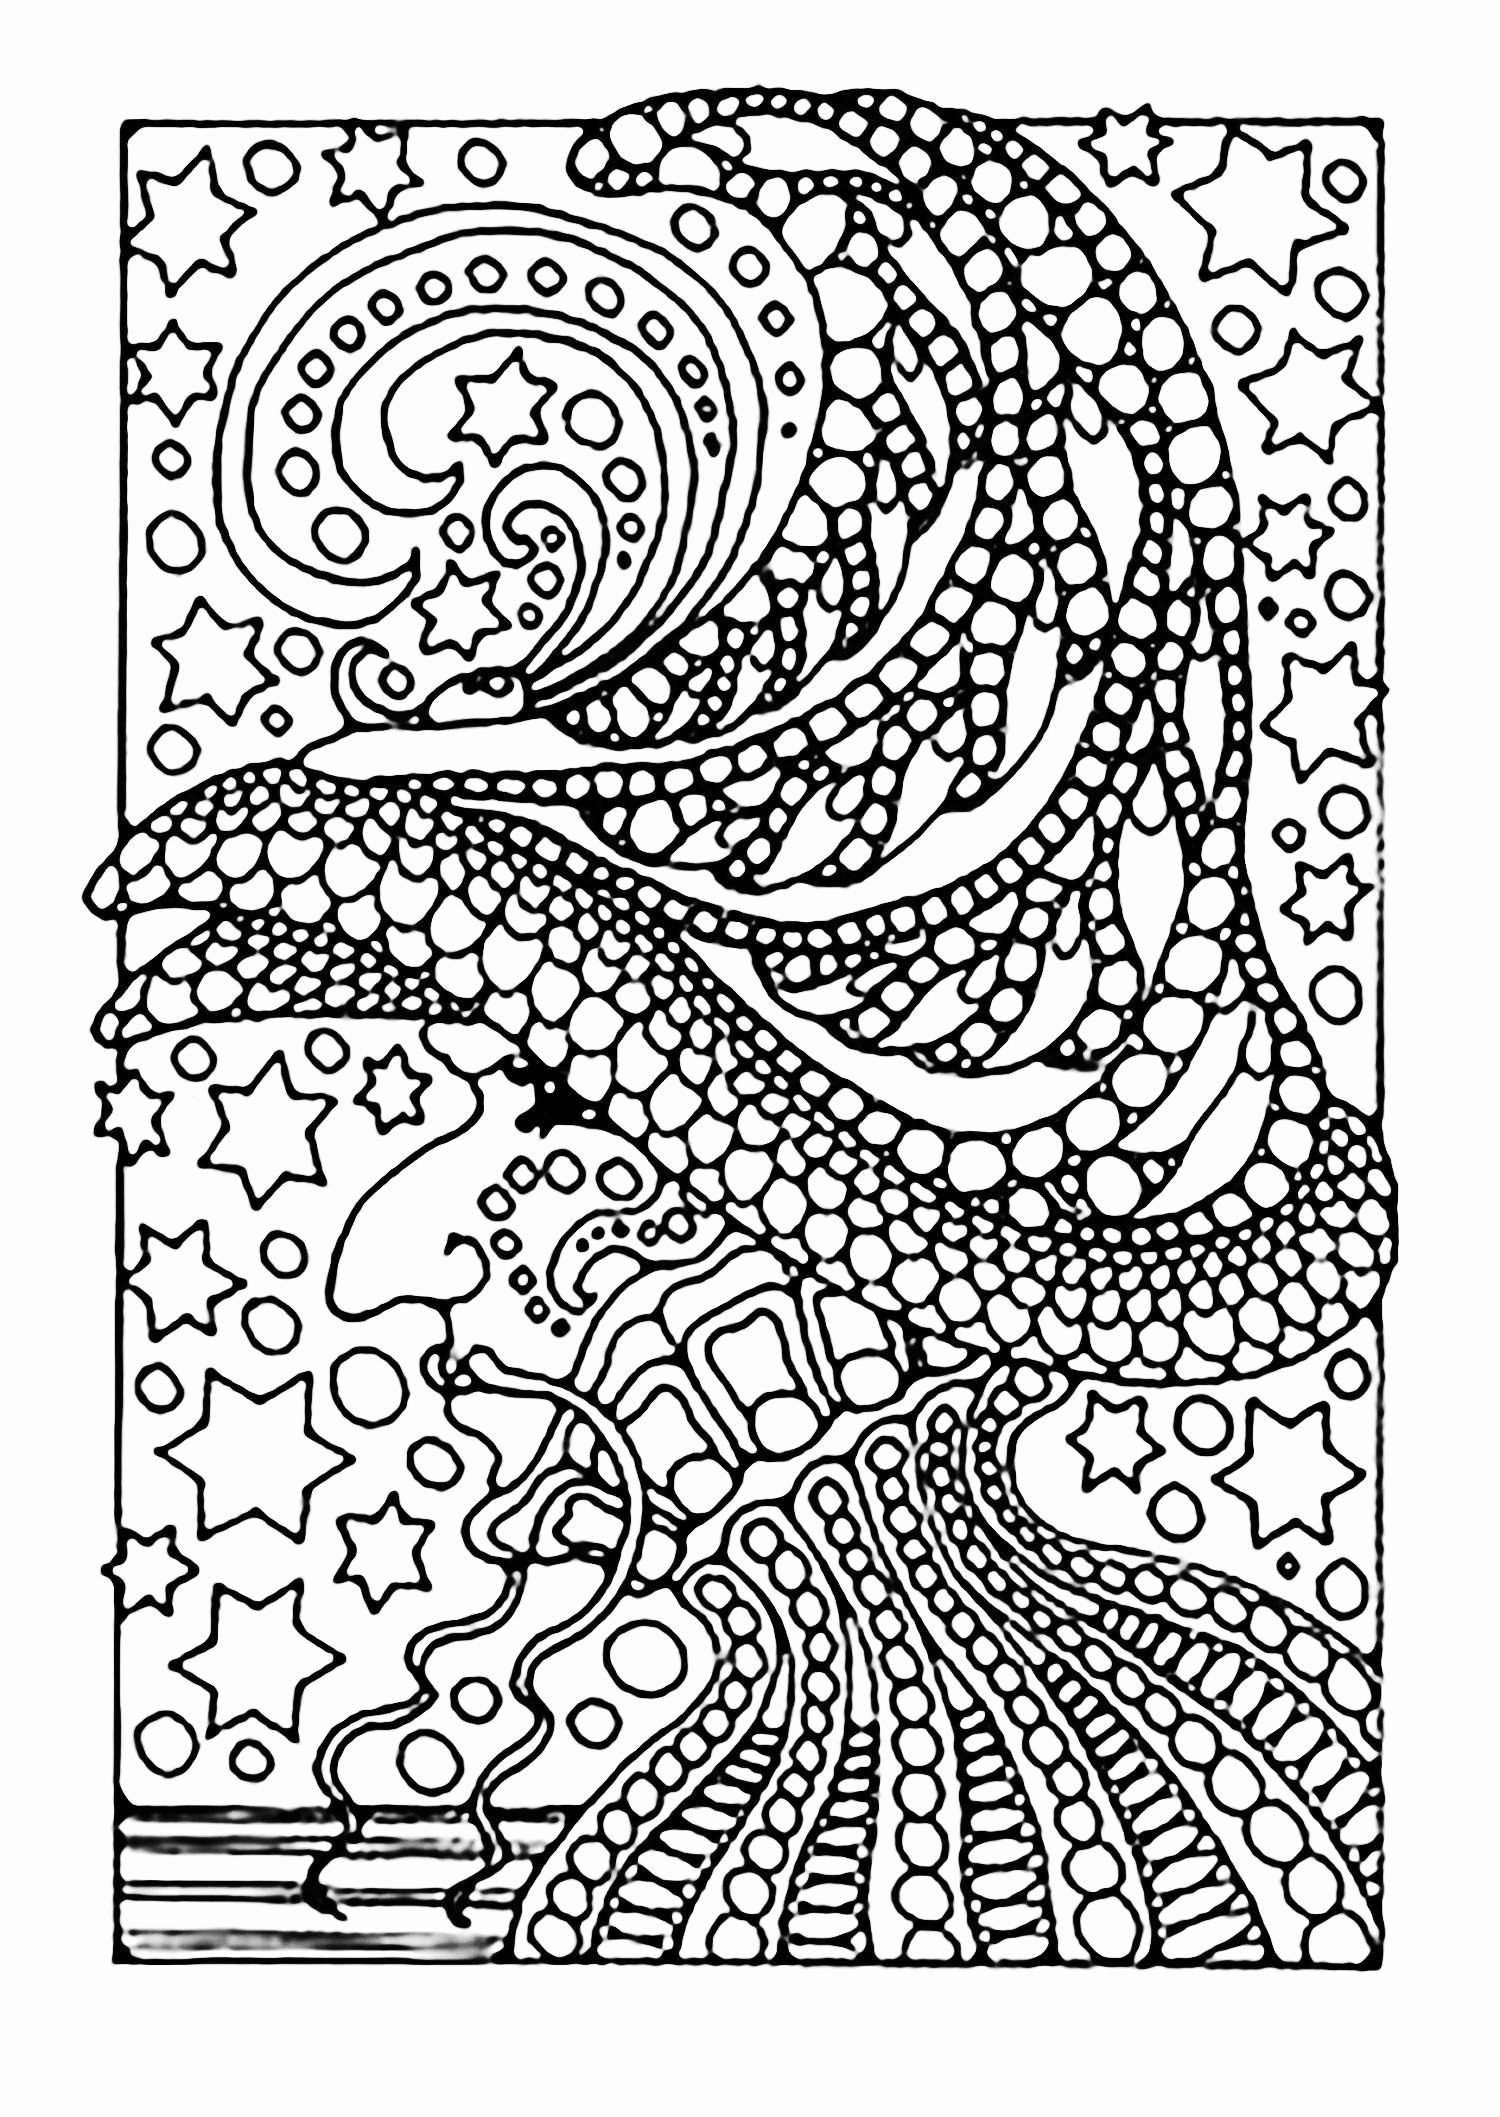 turn pictures into coloring pages for free Download-Turn Into Coloring Page Crayola New Crayola Giant Coloring Pages Giant Coloring Page Awesome Make 7-q